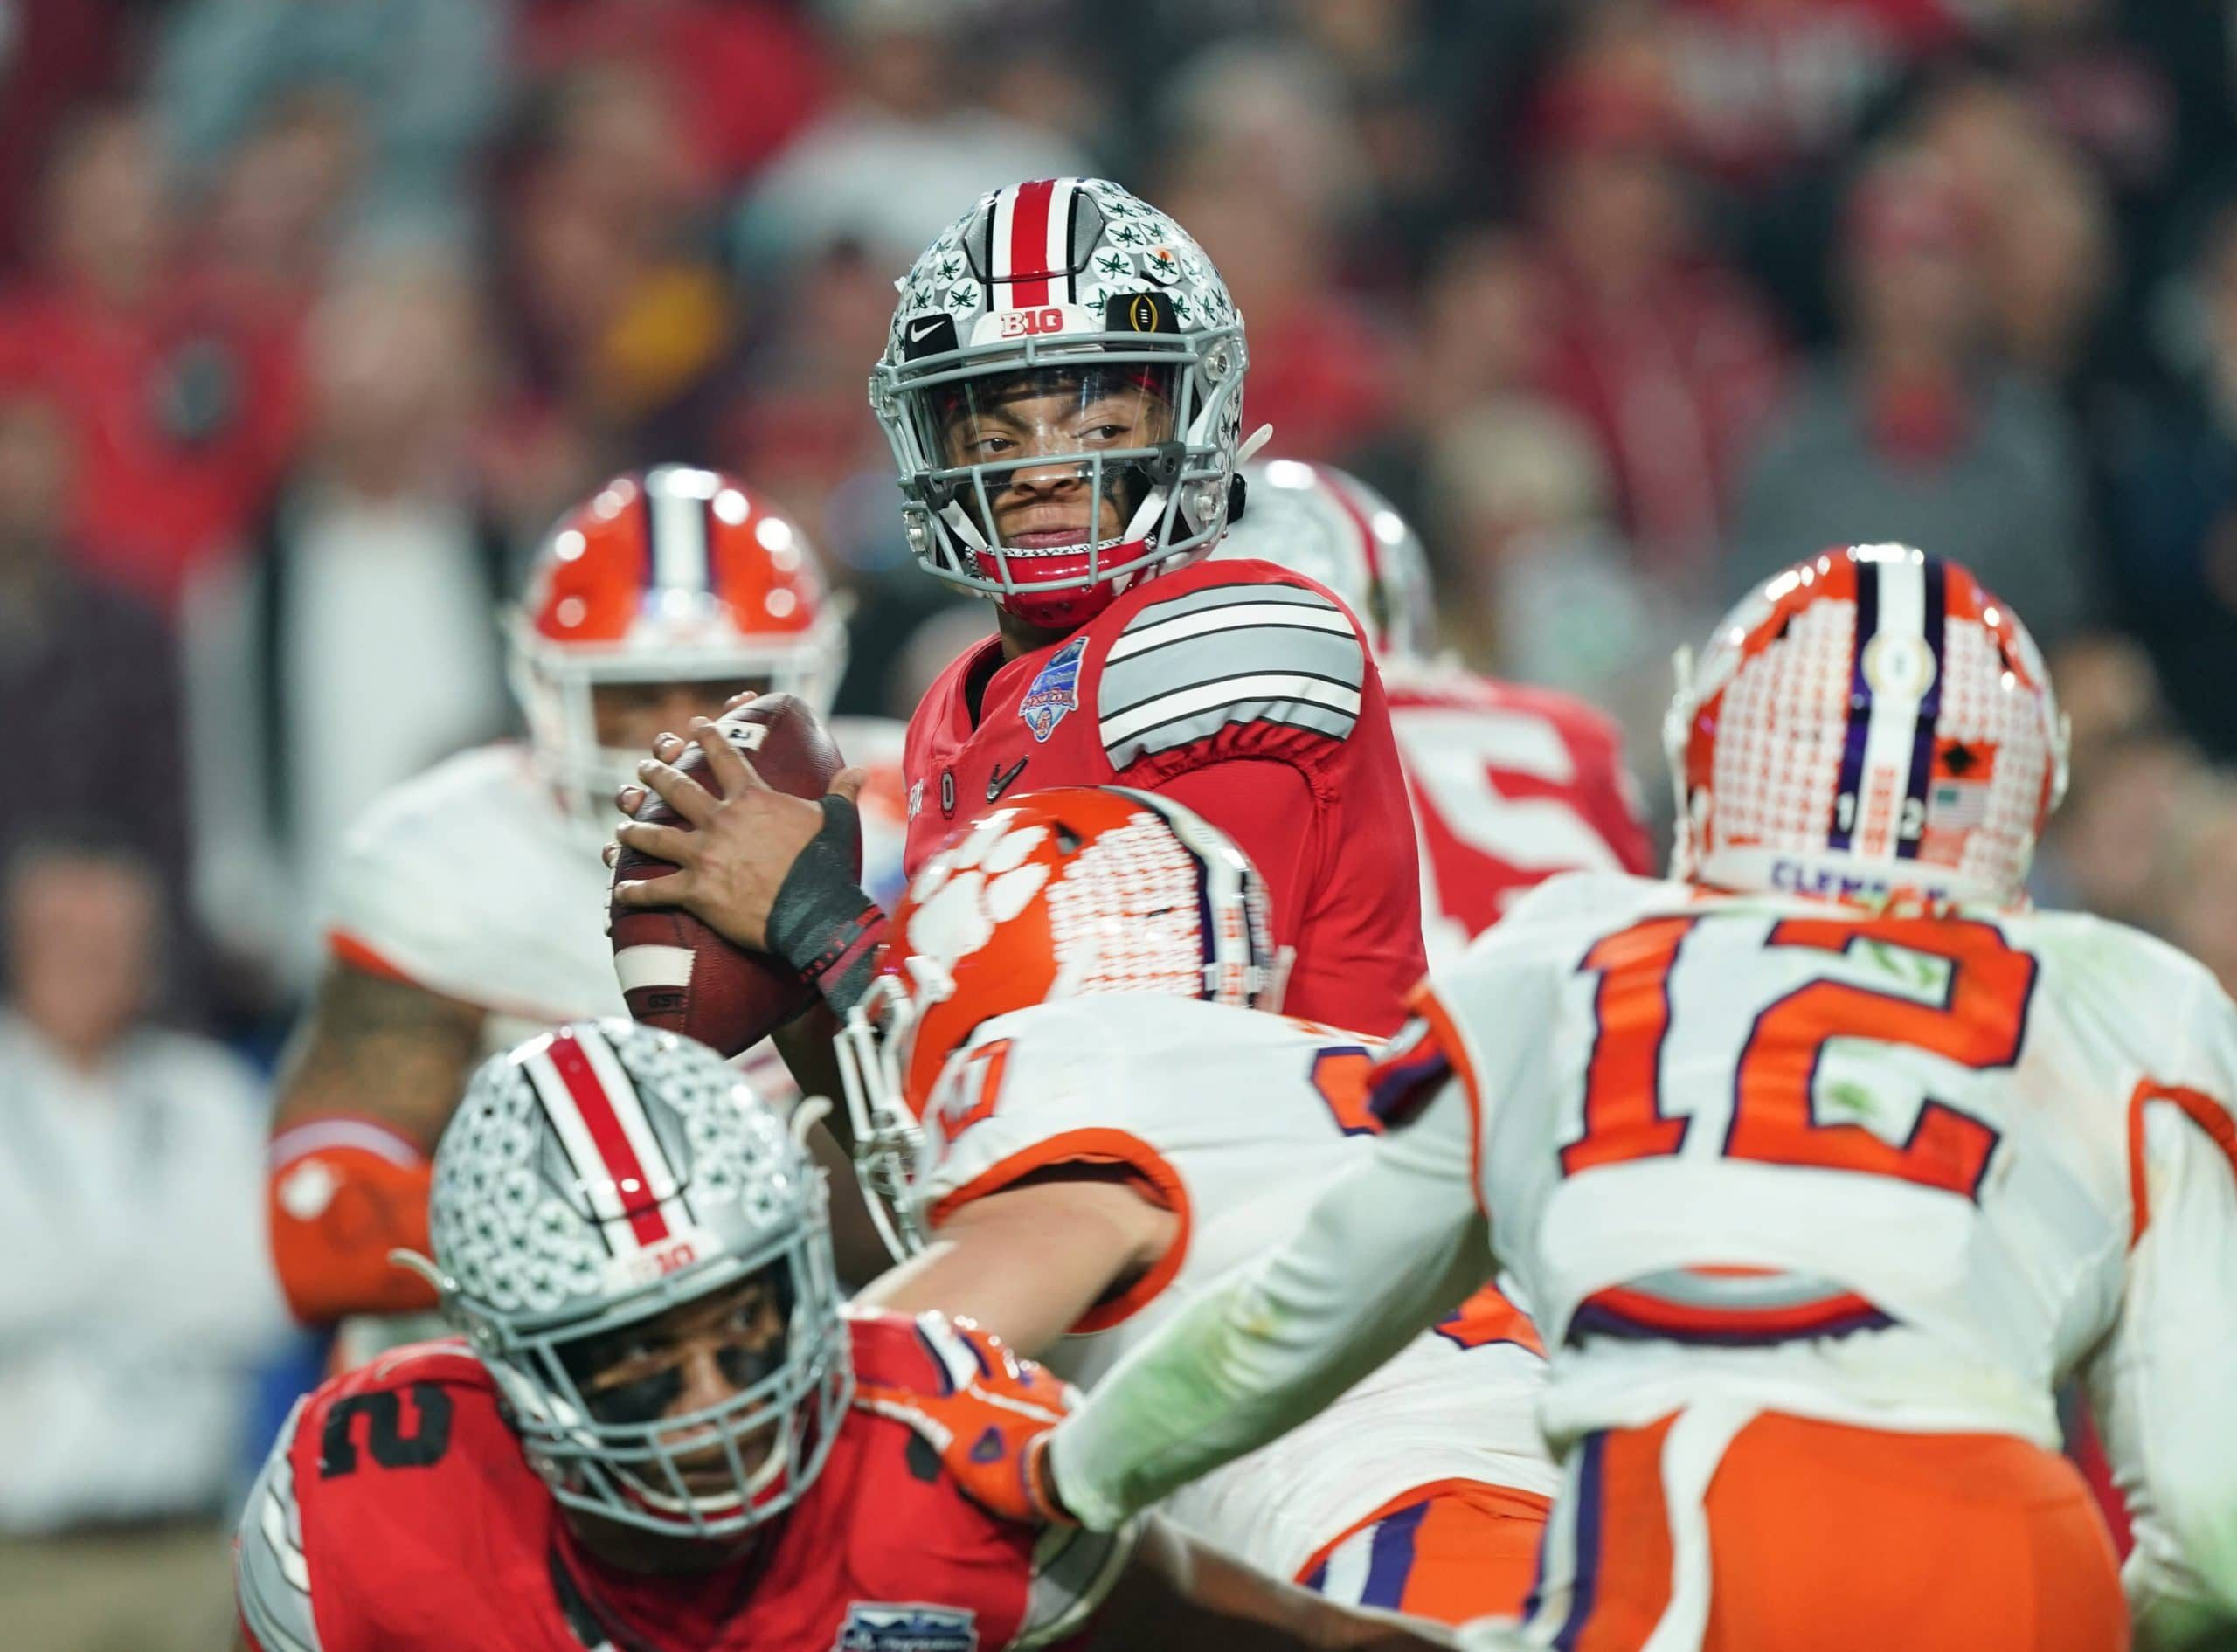 former Ohio State Buckeyes quarterback (1) Justin Fields is projected to go in the 1st Round of the NFL,